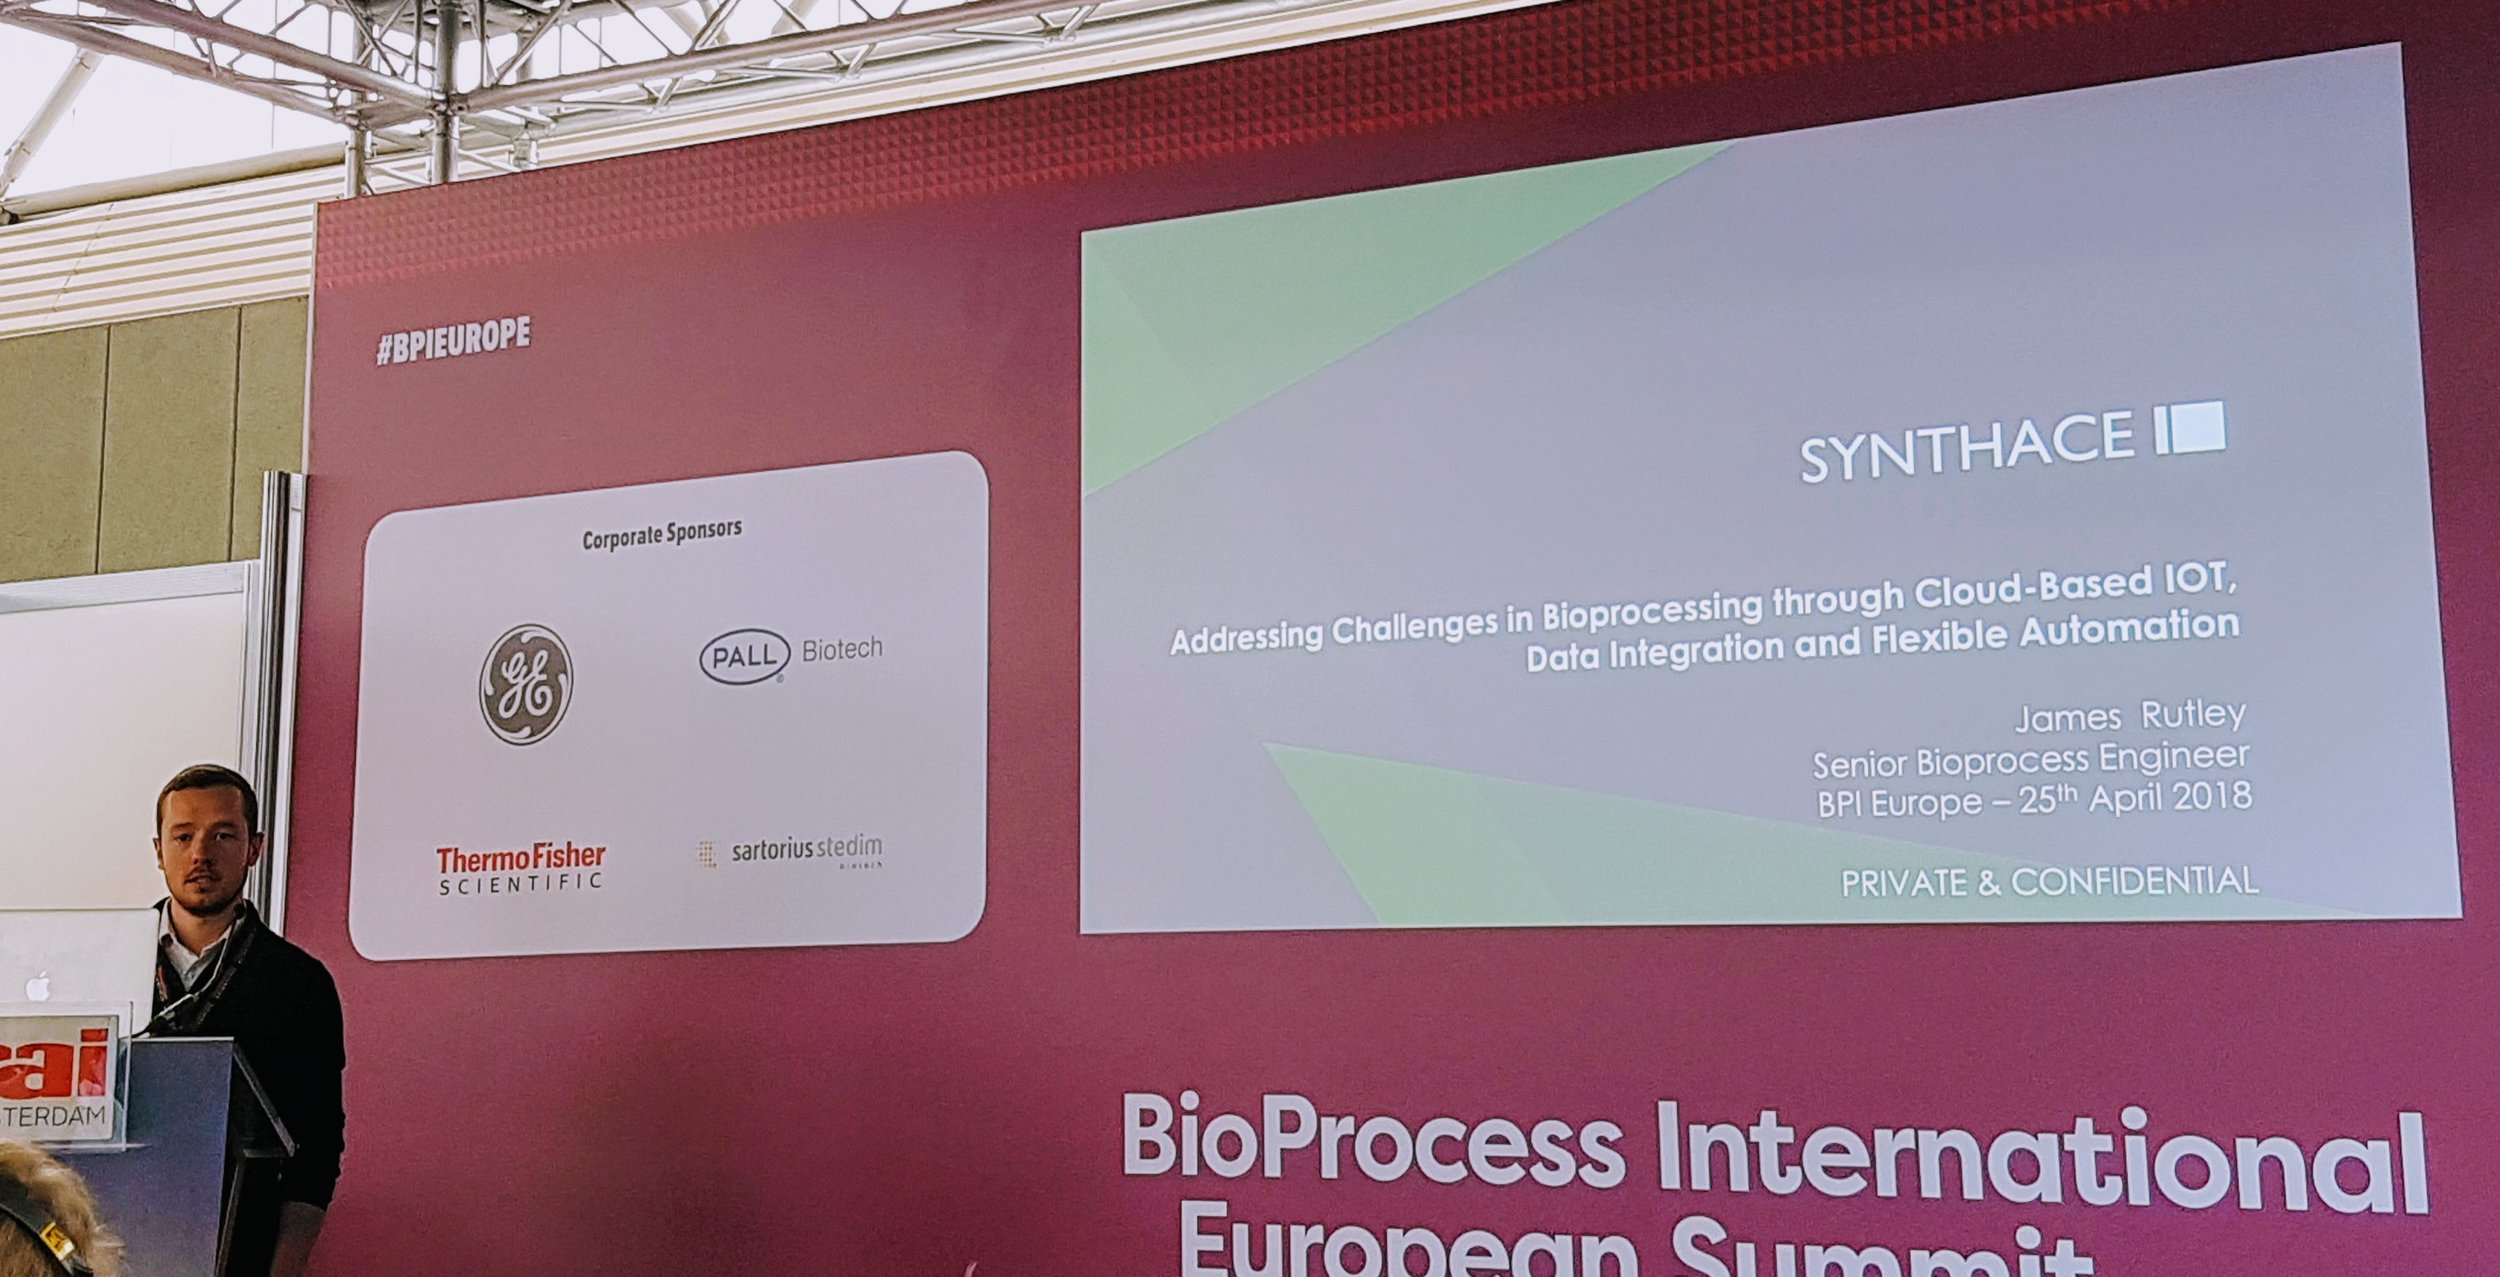 Figure 1. James Rutley, Senior Bioprocess Engineer at Synthace talking about leveraging the cloud in bioprocess development.